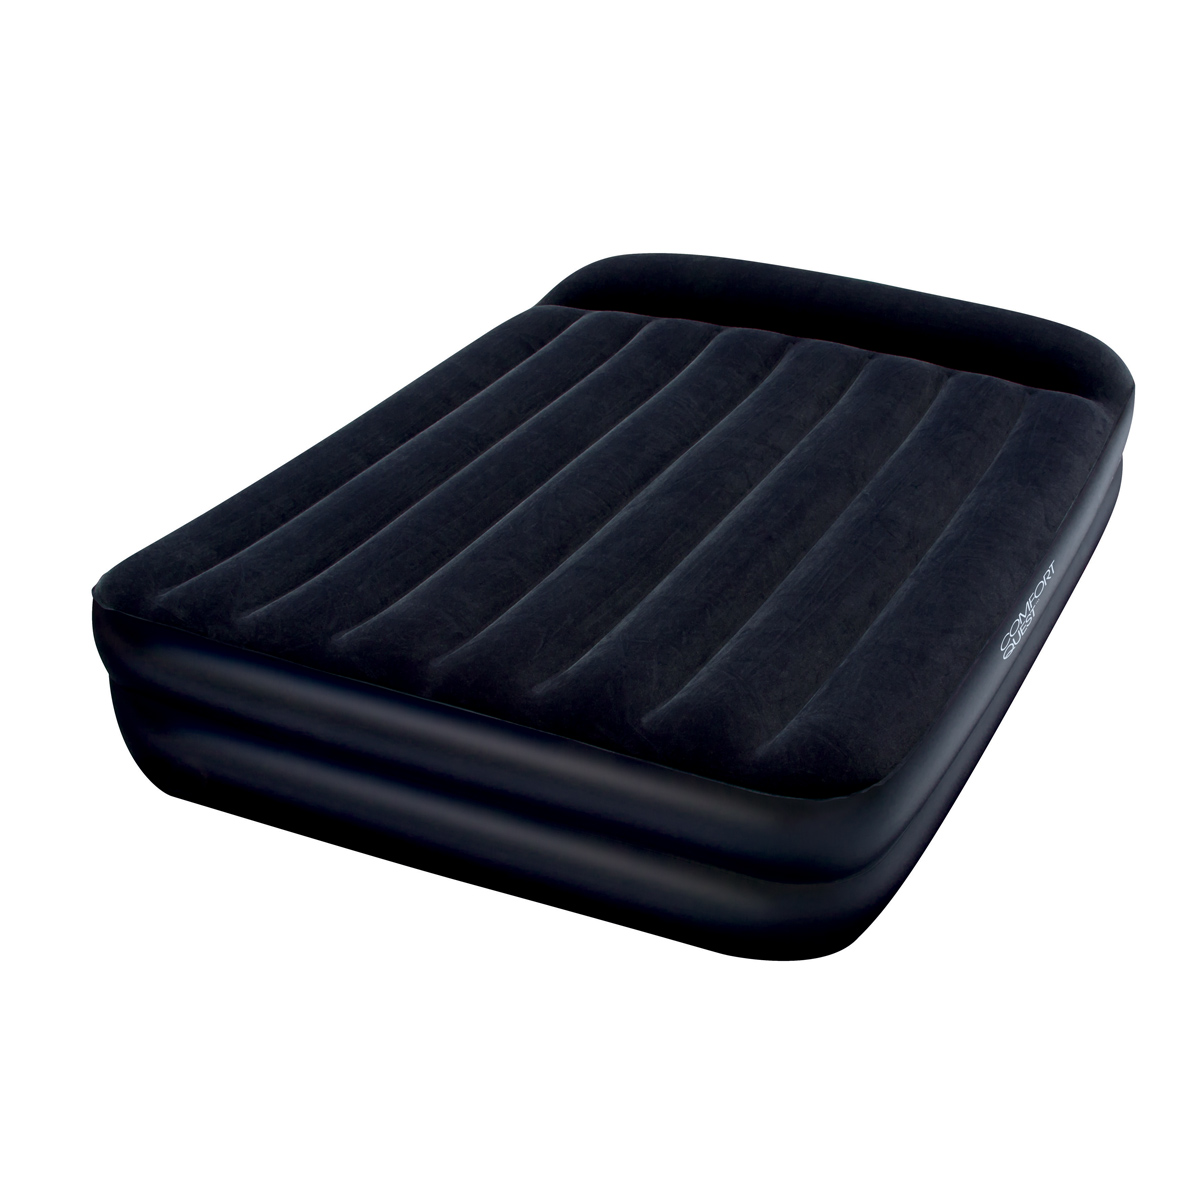 Bestway Premium Air Bed w/ Pump - Queen | 67404E